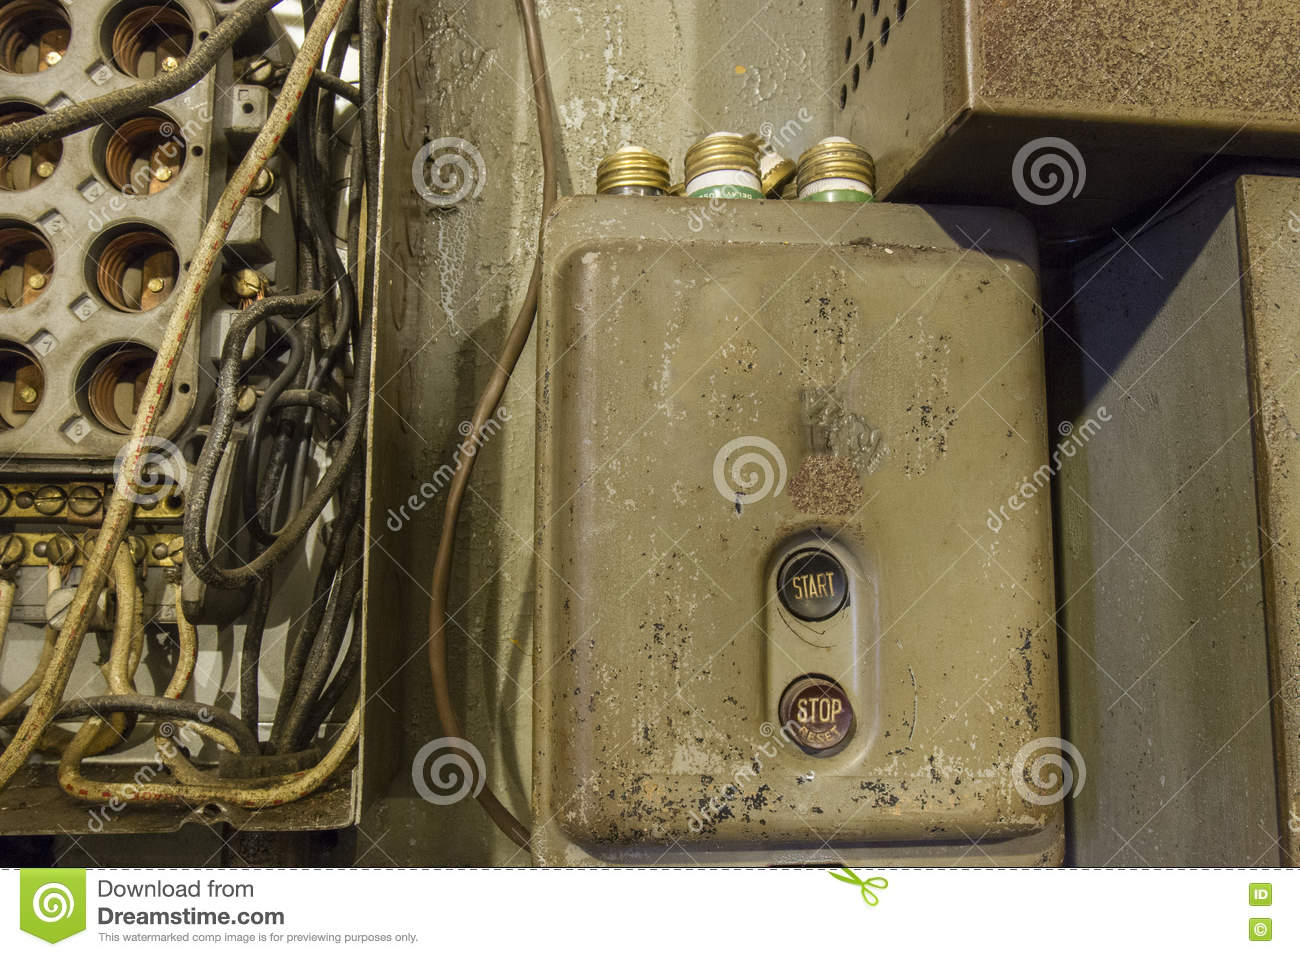 hight resolution of fuse box with fuses stock image image of archaic wires 71537325vintage fuse box with fuses